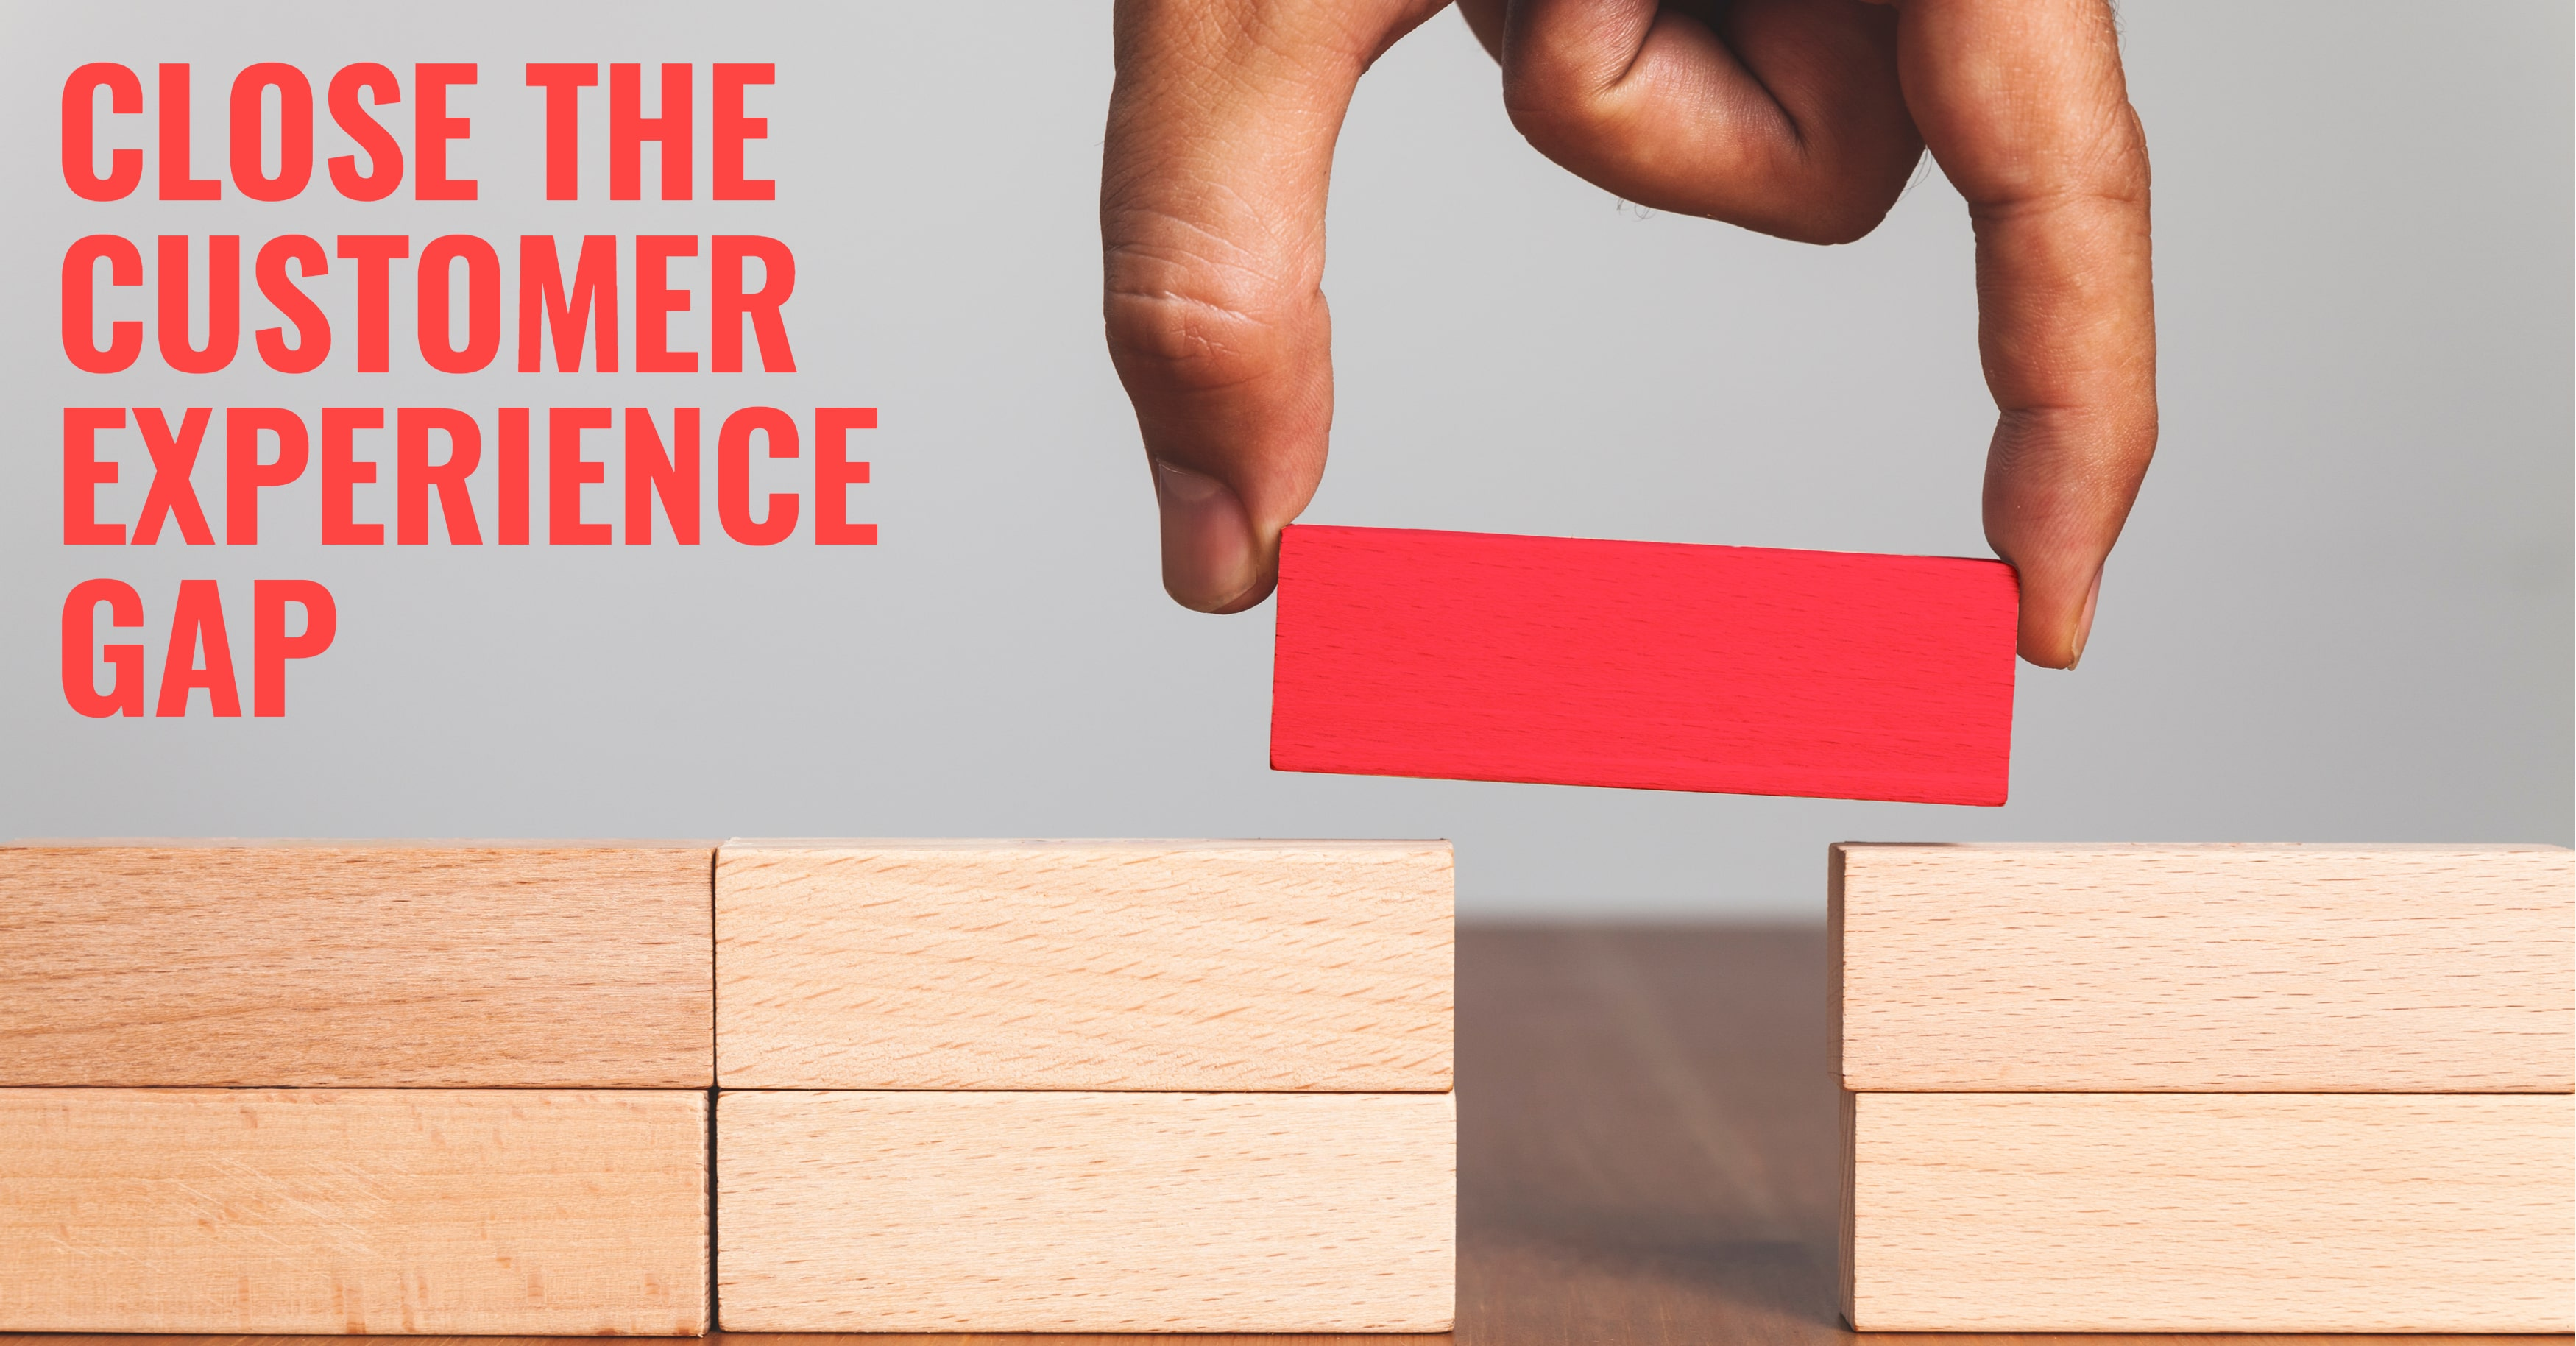 How CRM Can Close the Customer Experience Gap